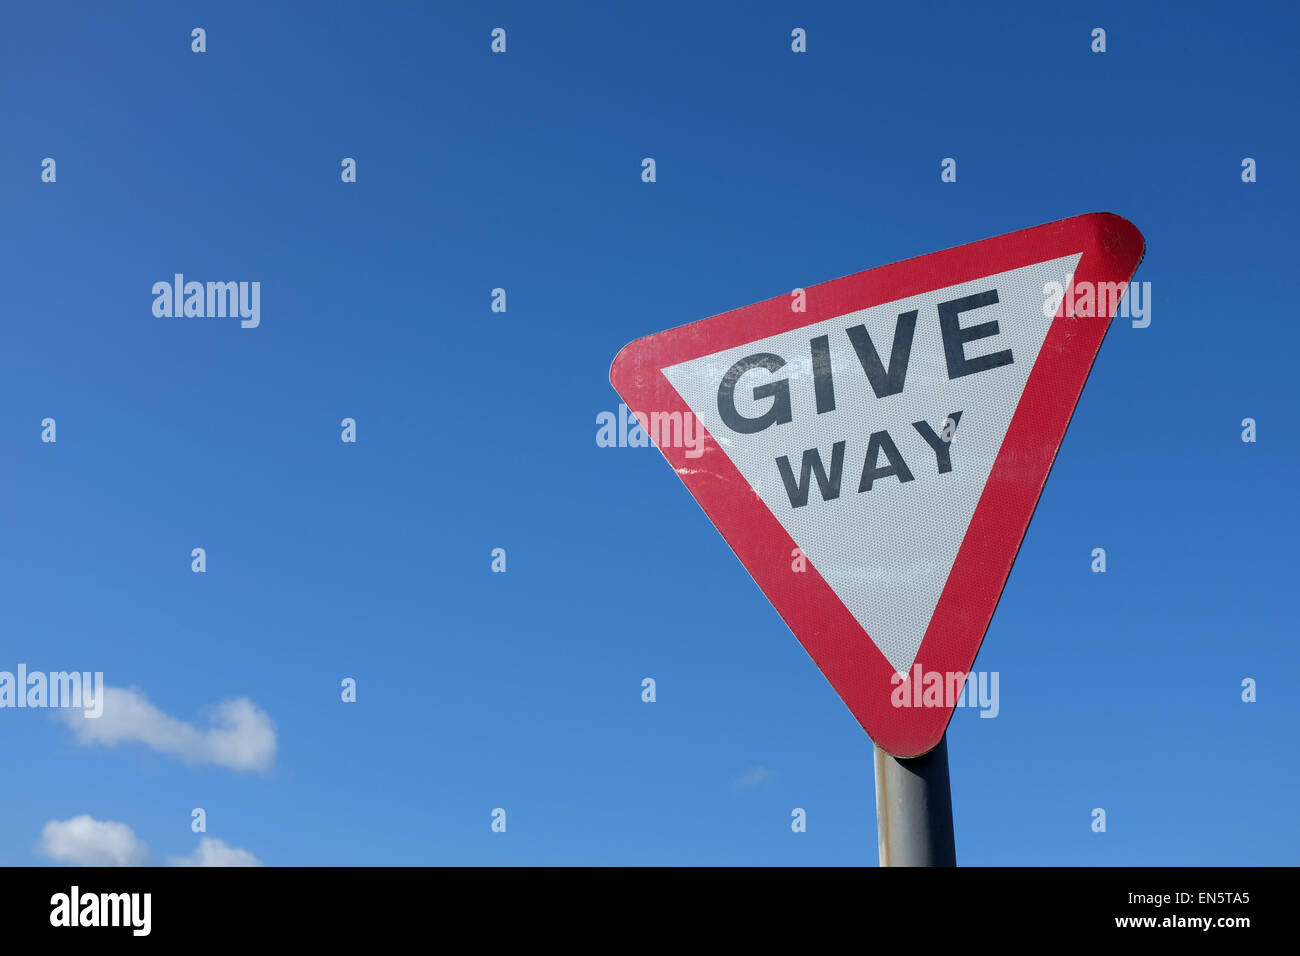 Give Way road sign against a blue background UK Stock Photo